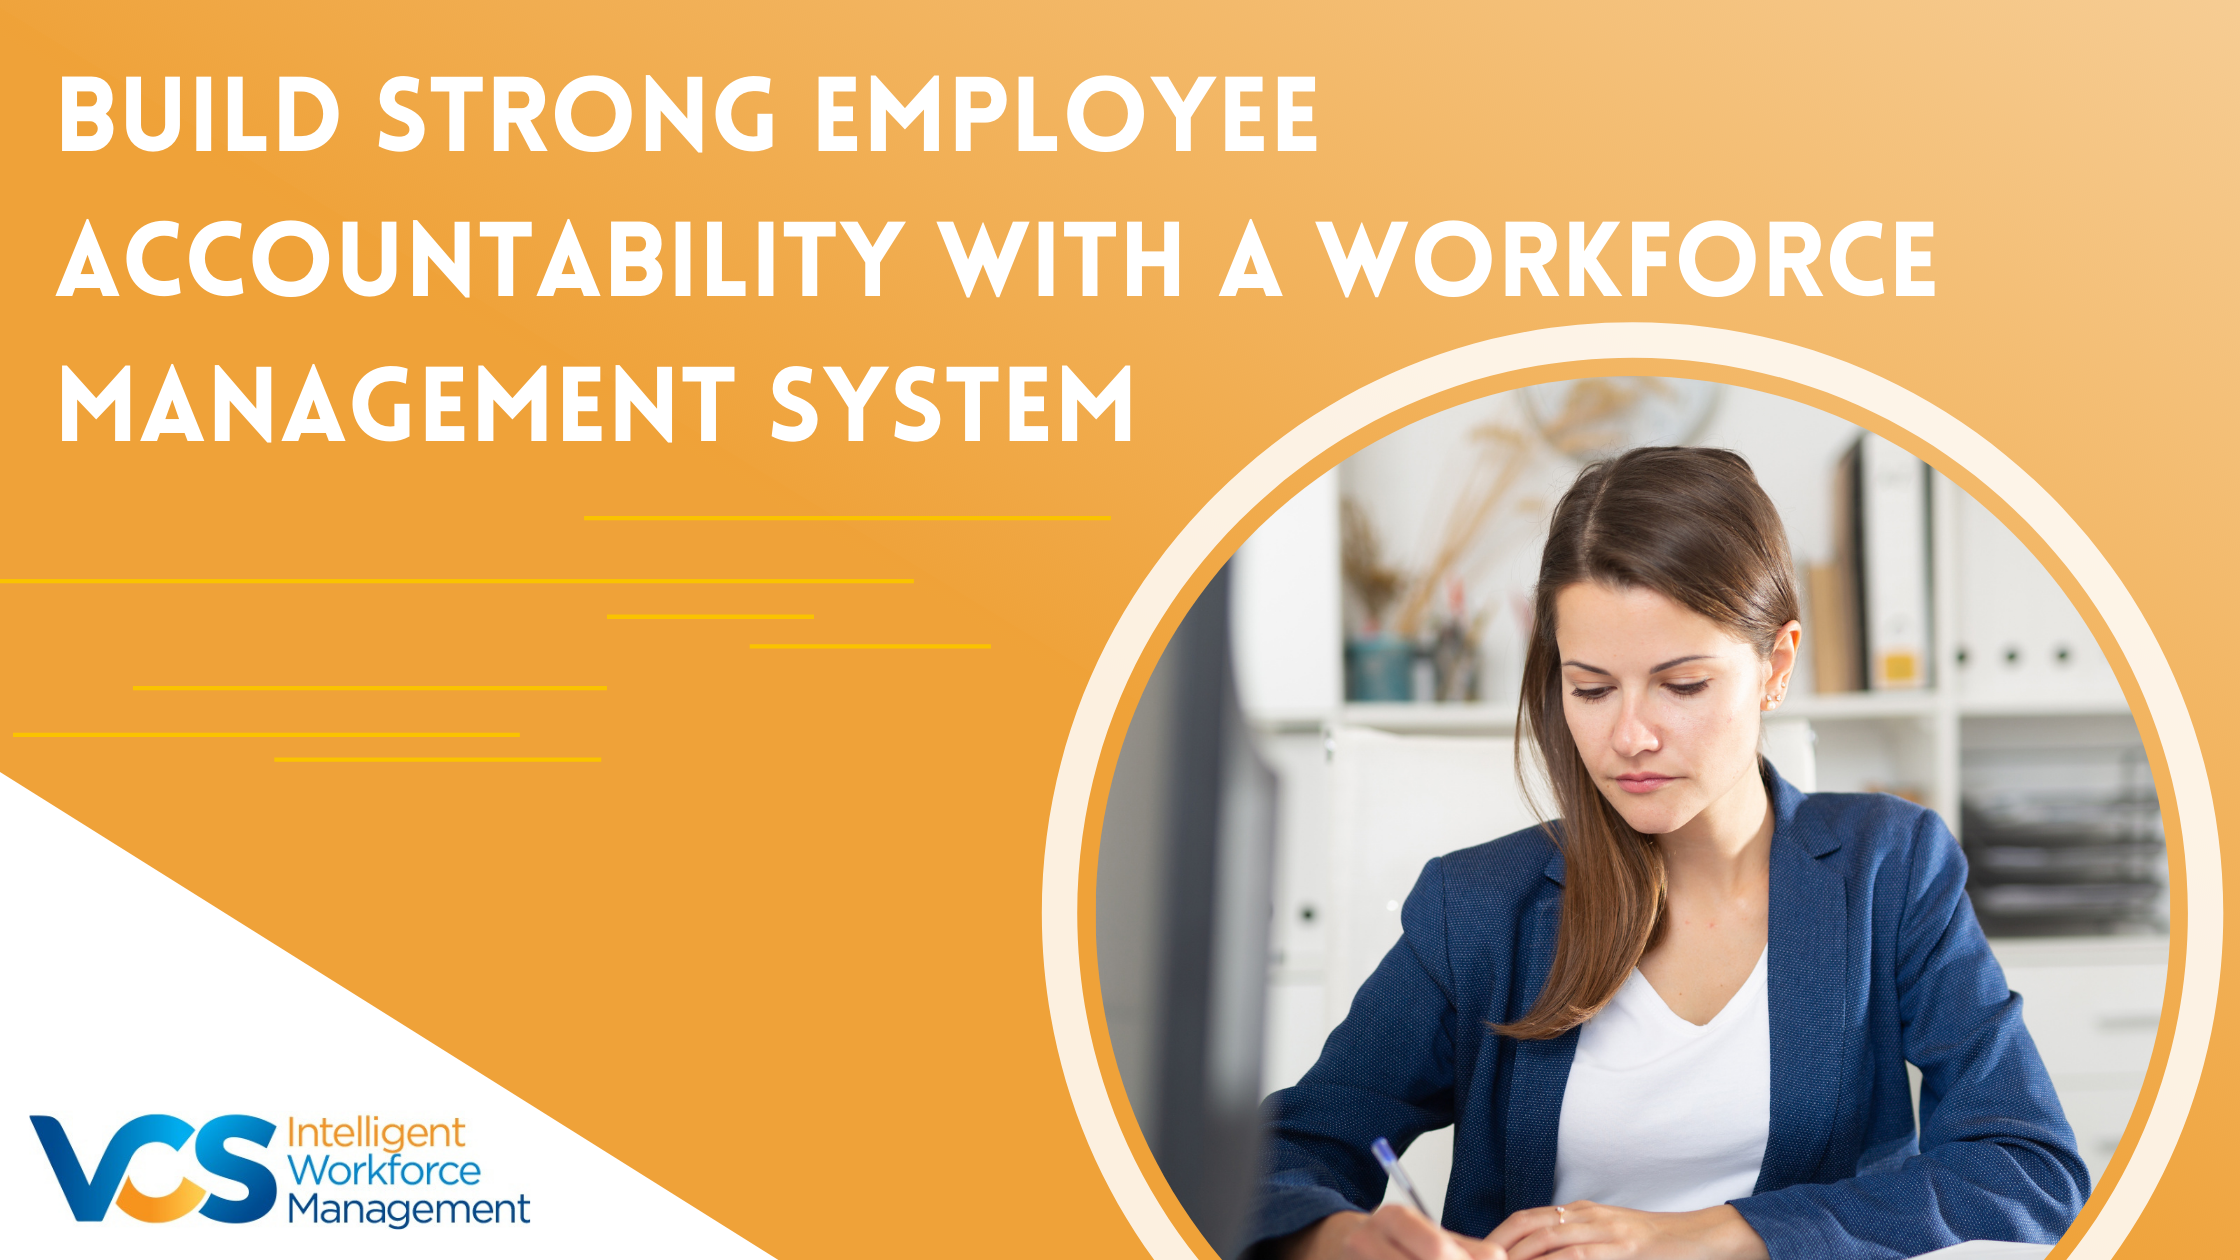 Build Strong Employee Accountability with a Workforce Management System